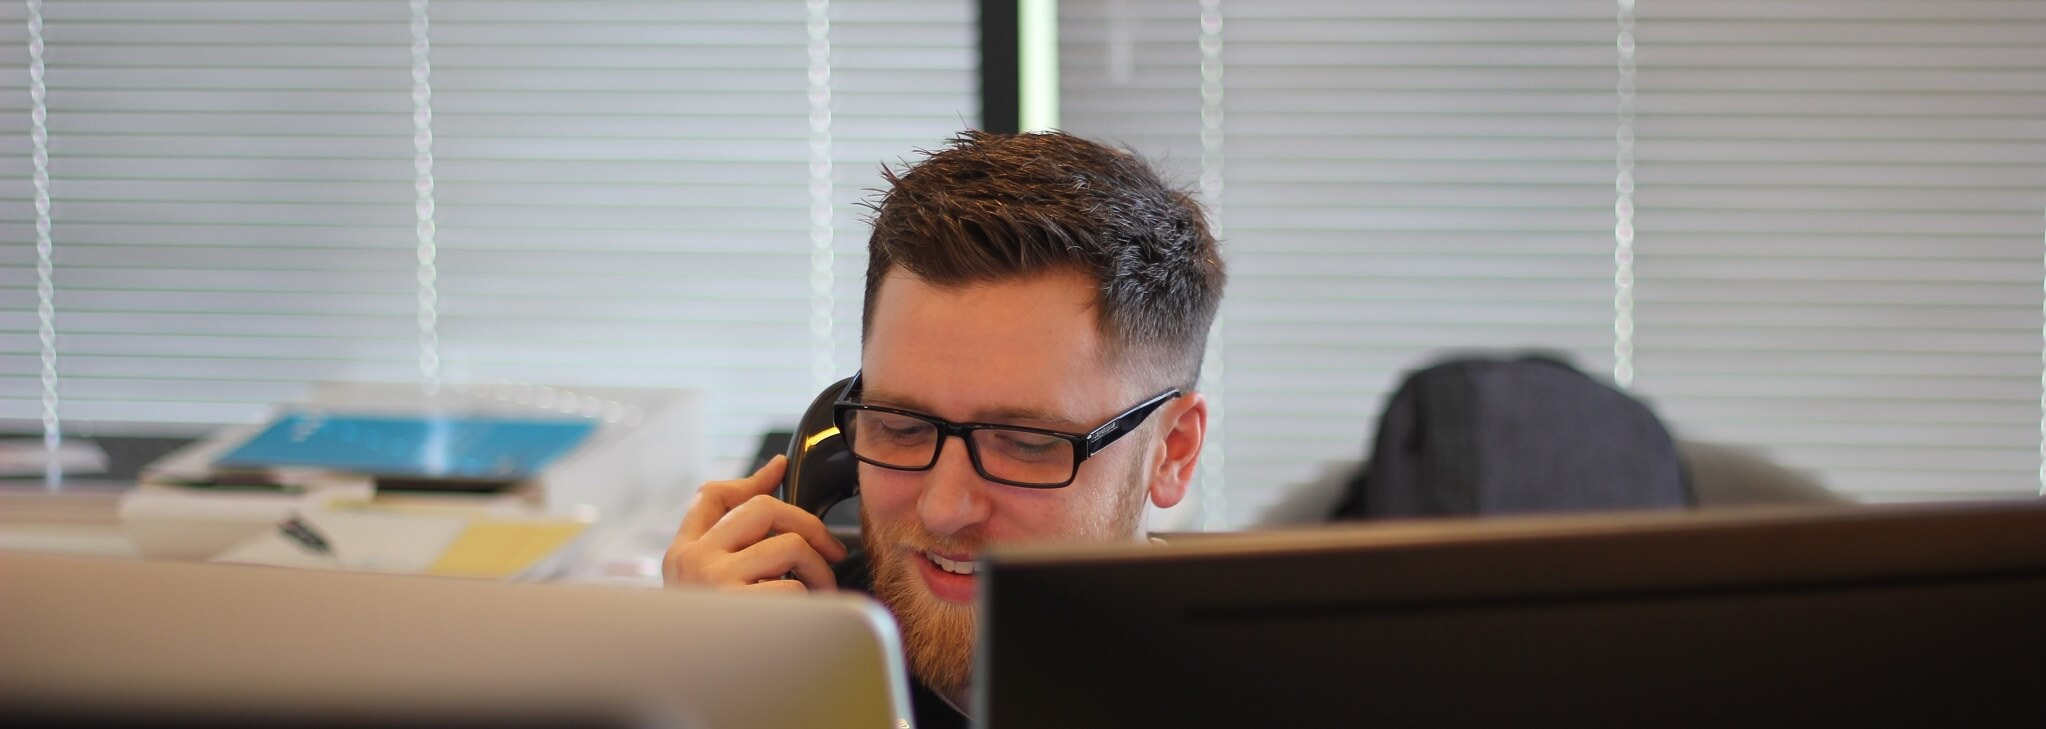 Photo of agent working in call centre